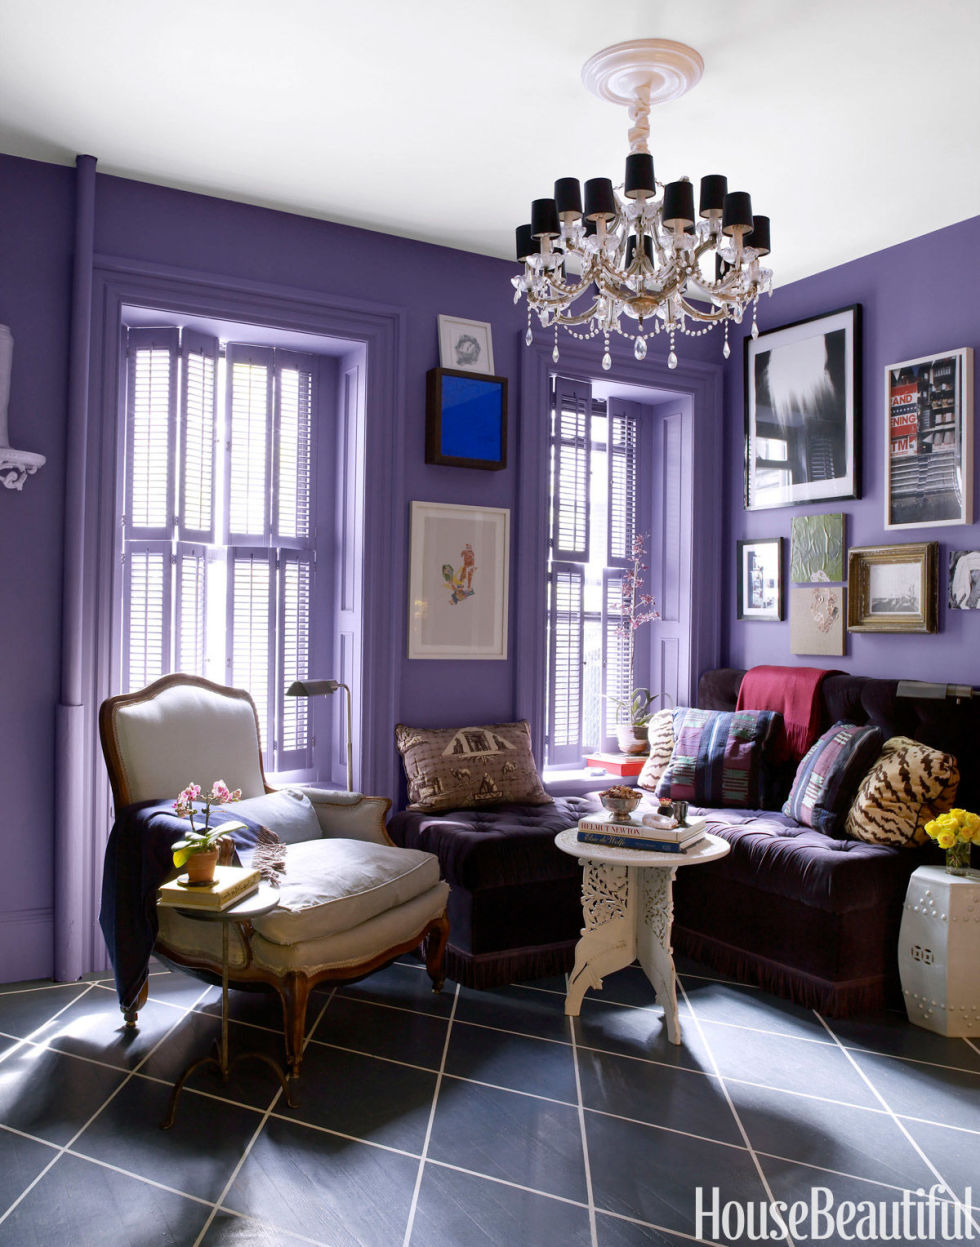 Paint Rooms Ideas 12 best living room color ideas - paint colors for living rooms